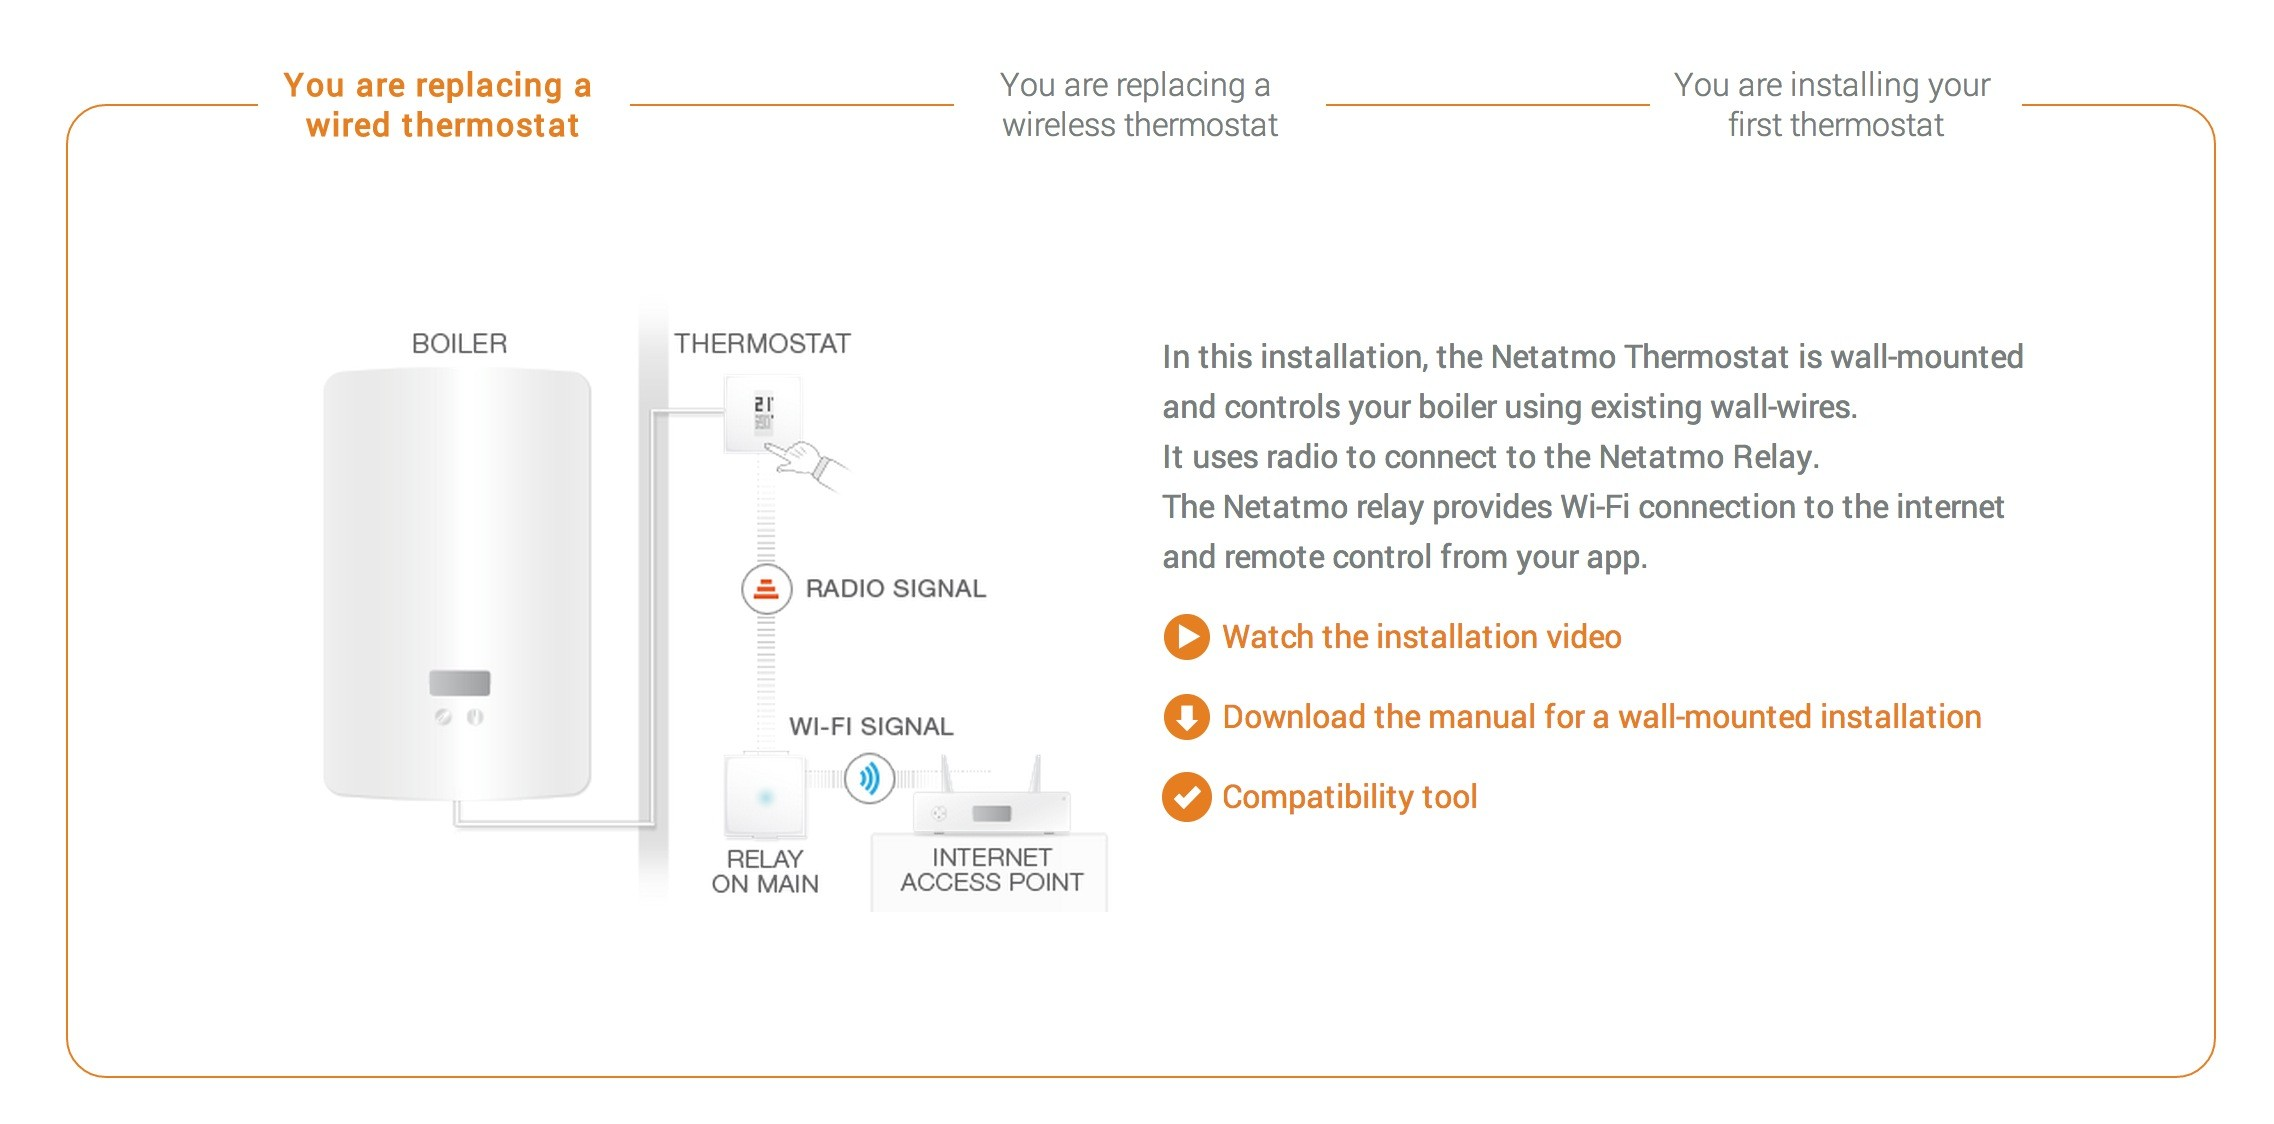 Wiring Diagram For Tado Thermostat Library Salus It5000 2nd Generation Netatmo Replacing Old Wired